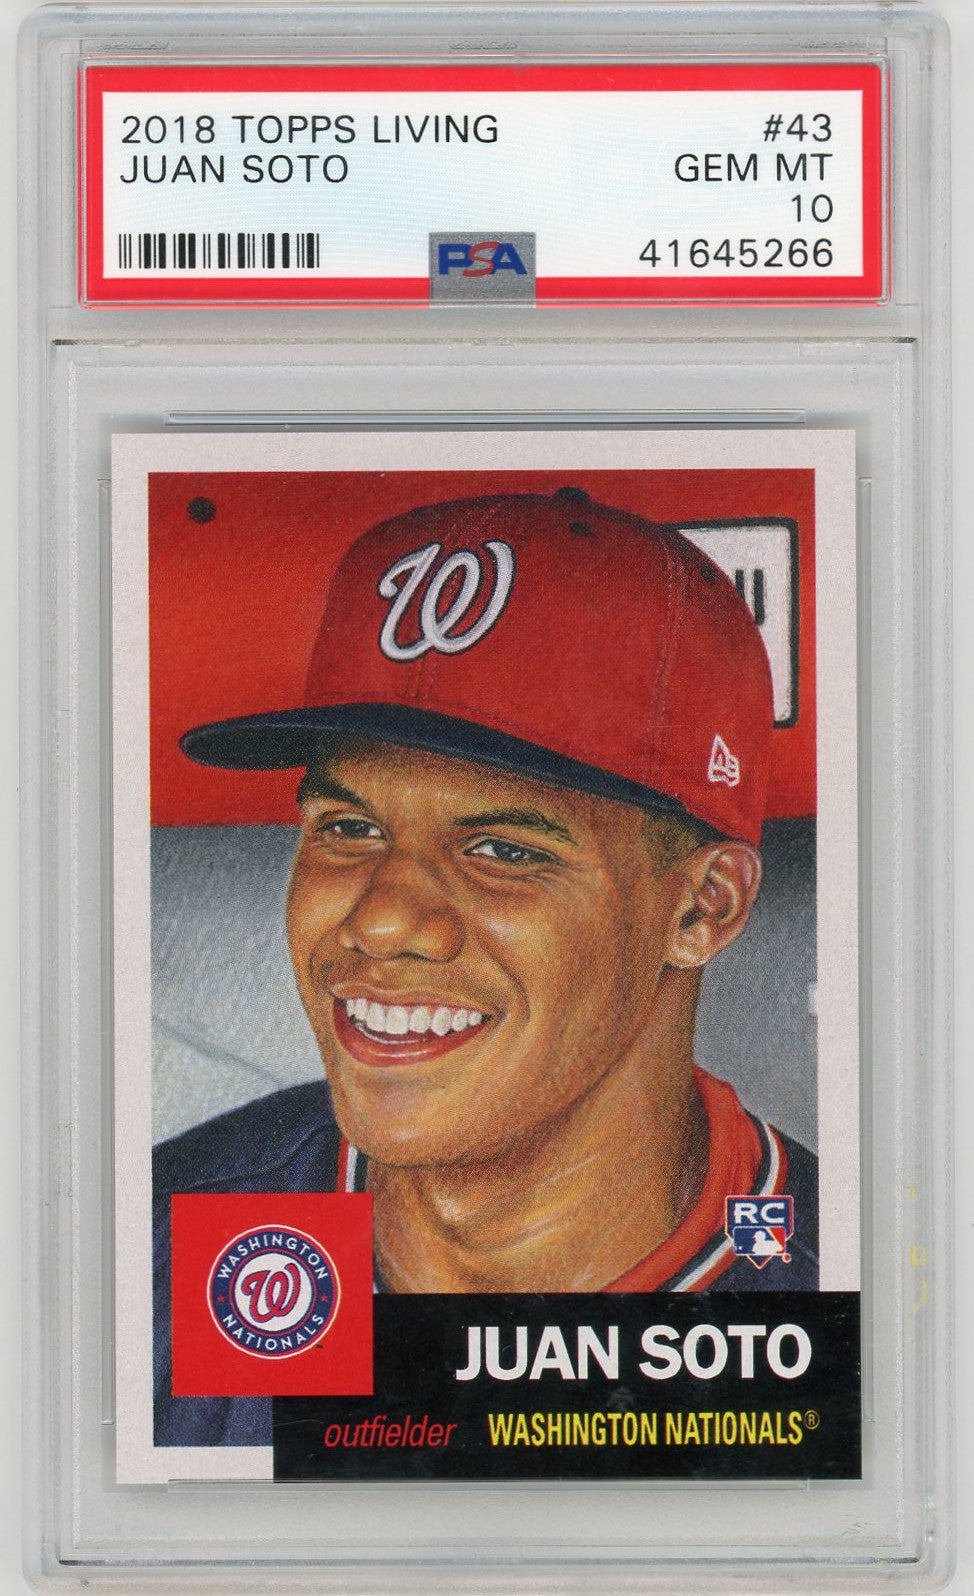 Juan Soto Washington Nationals 2018 Topps Living Baseball Rookie Card RC #43 Graded PSA 10 GEM MINT-Powers Sports Memorabilia